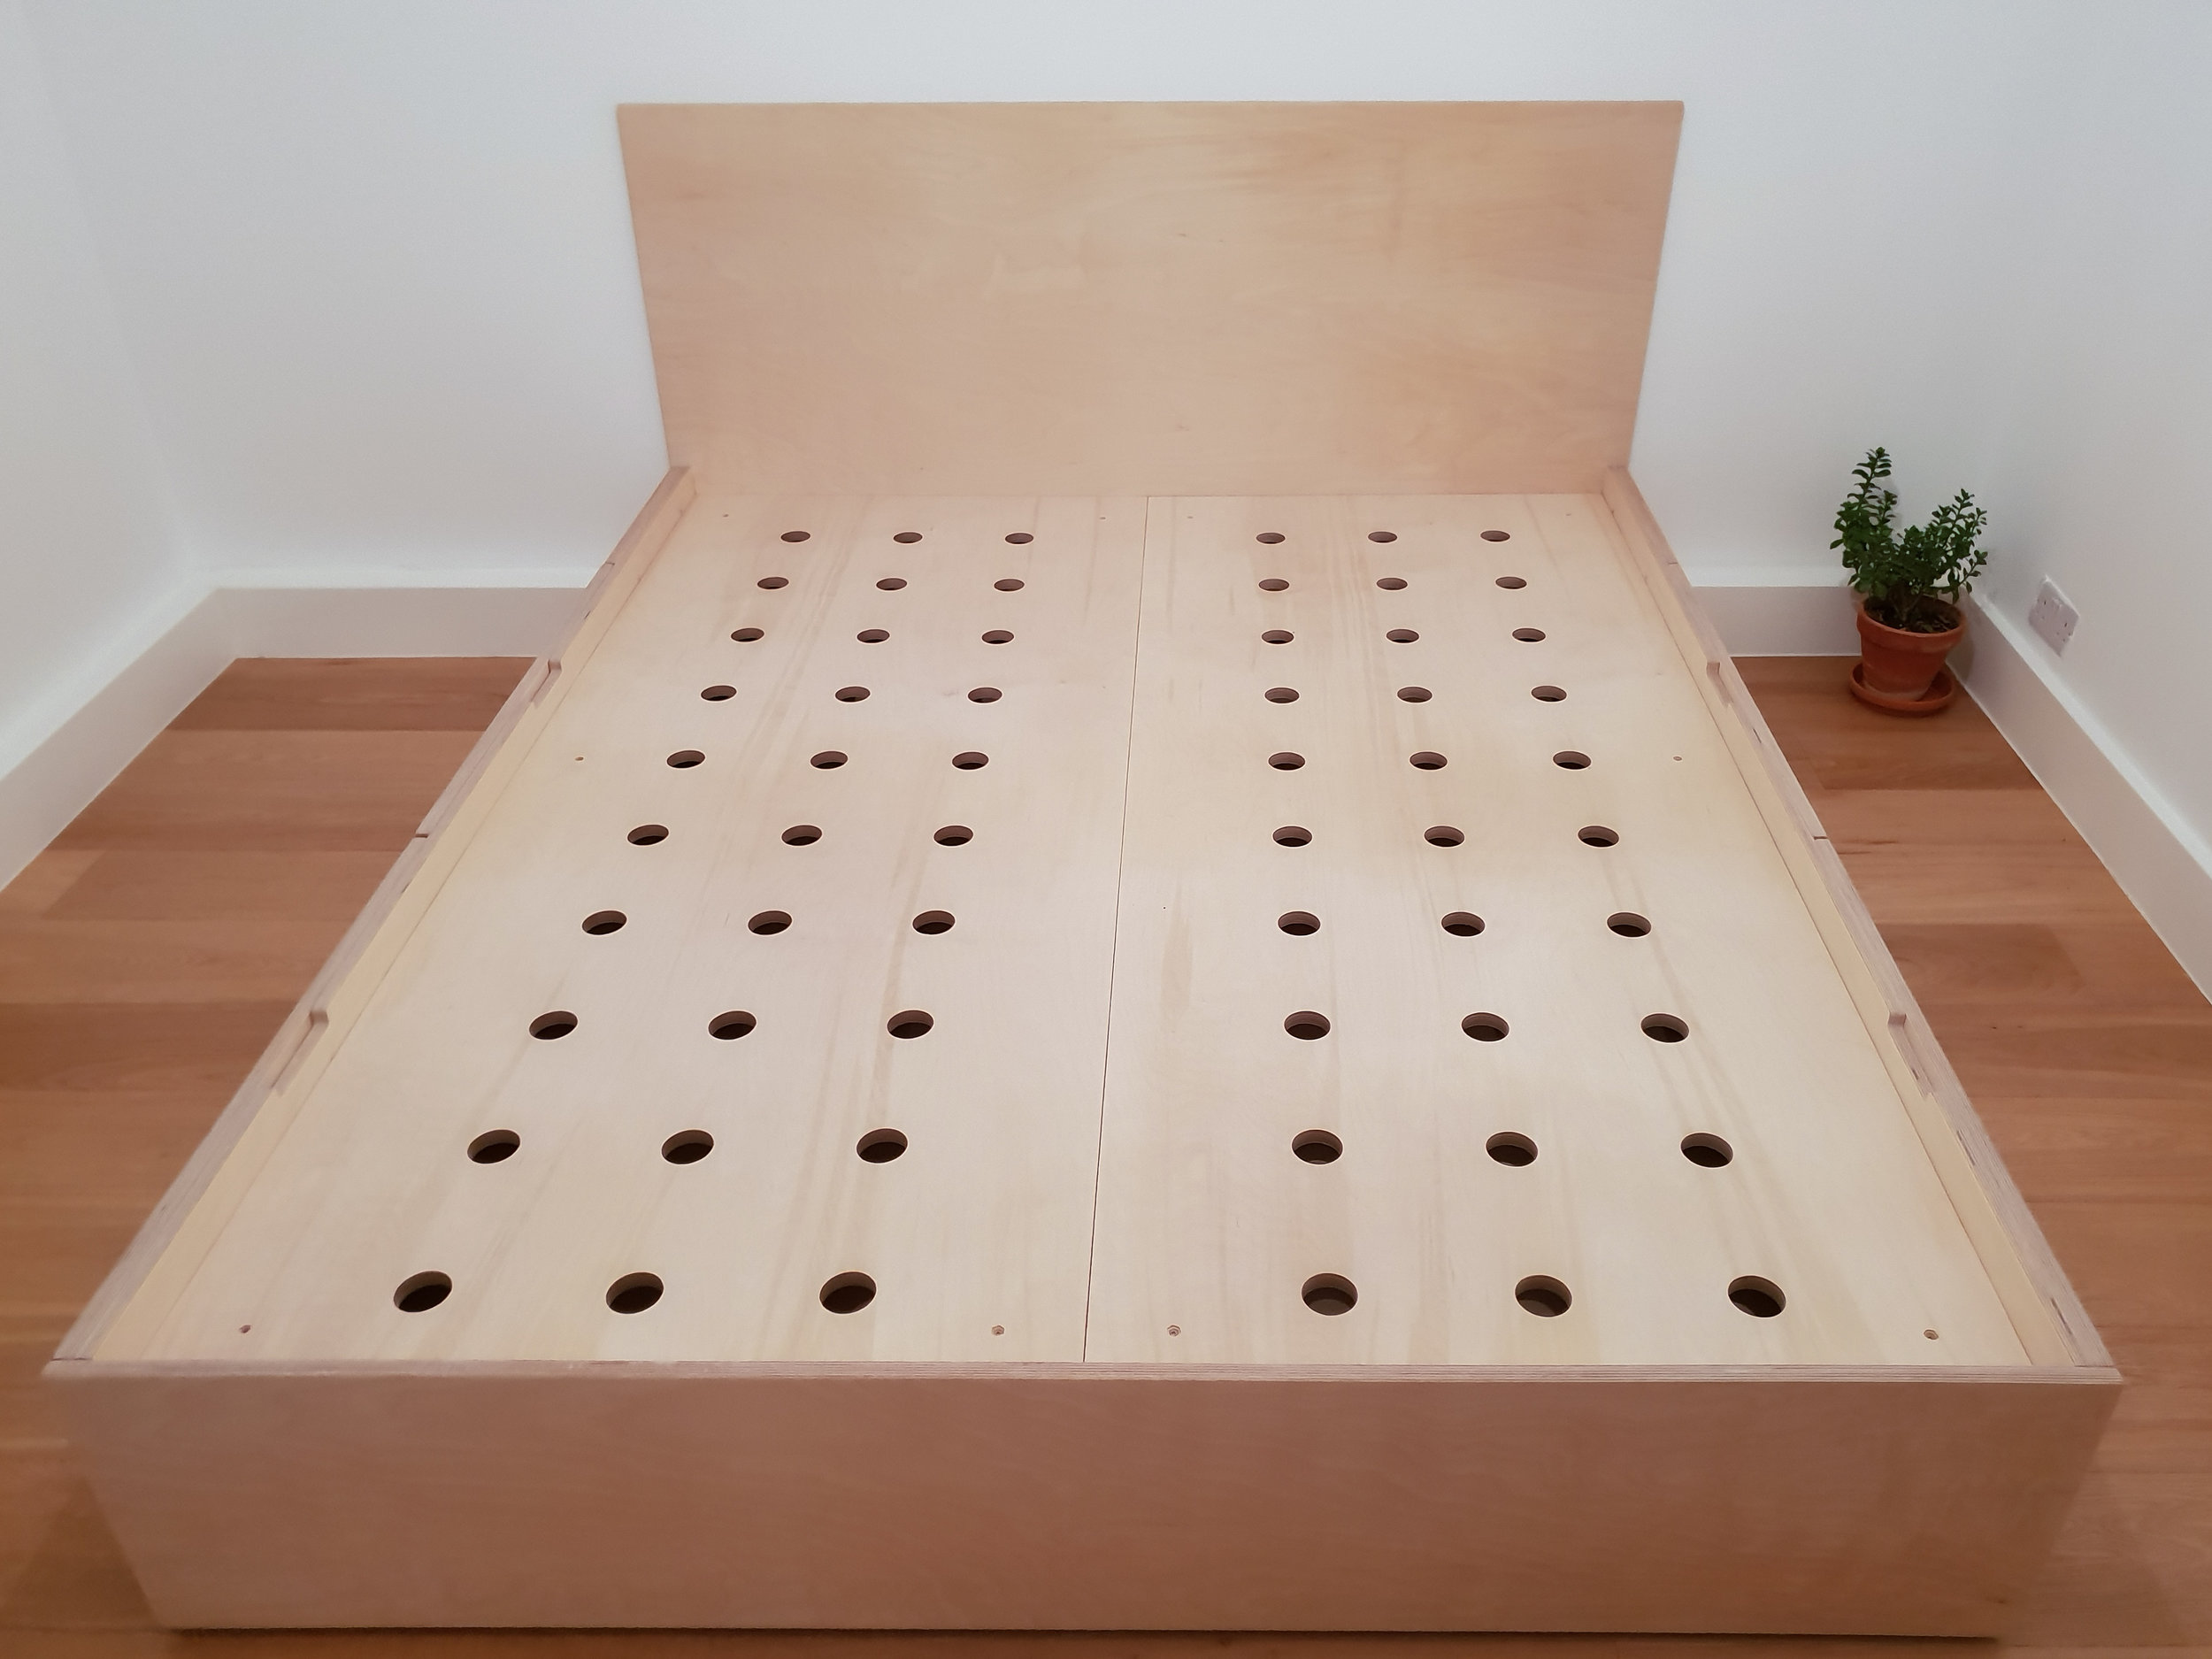 Plywood bed / giant whack-a-mole